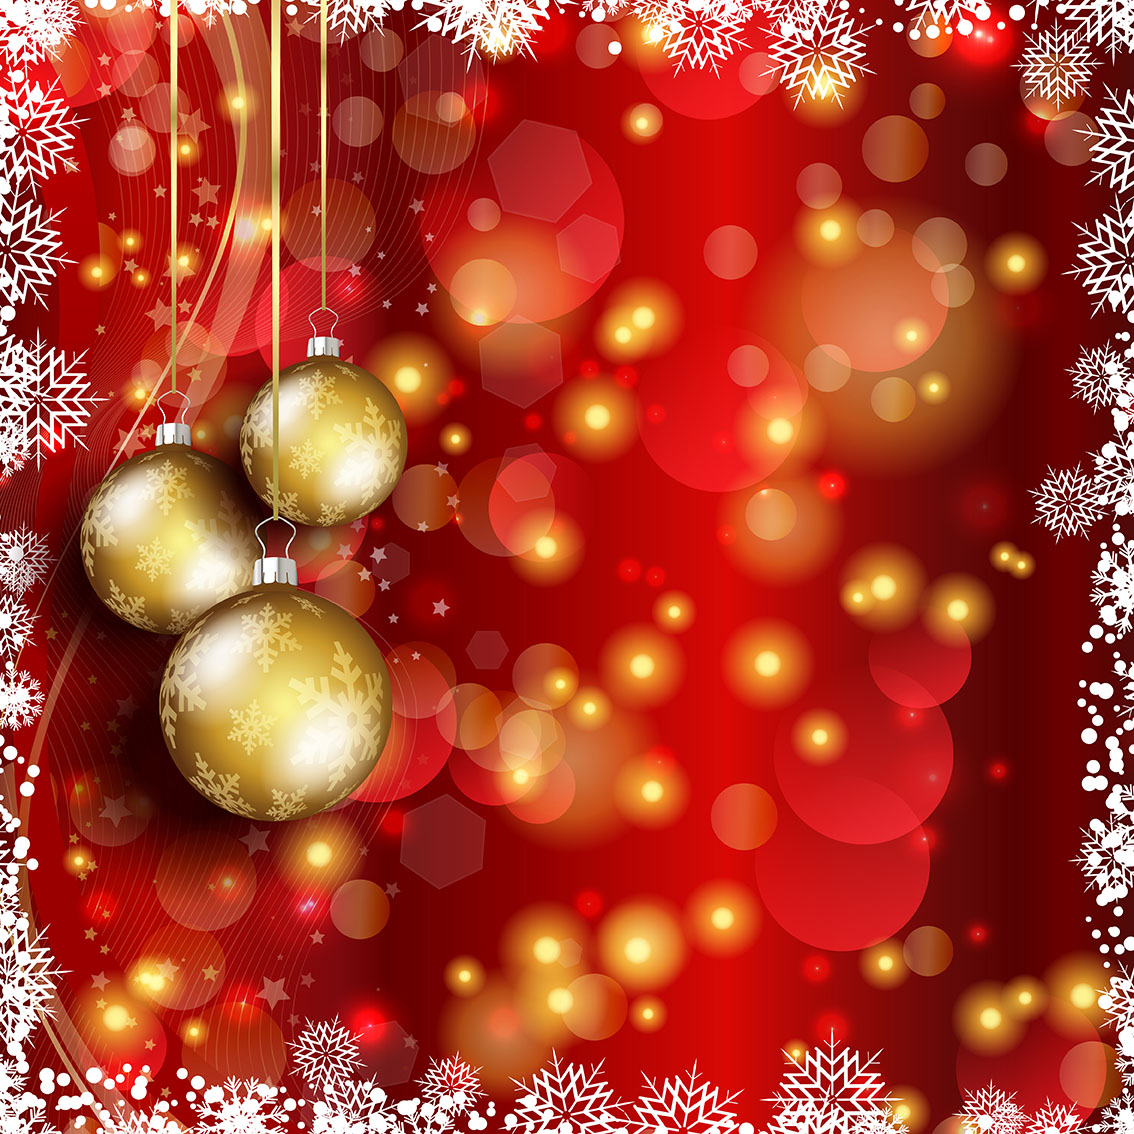 Christmas Bauble Background Download Free Vector Art